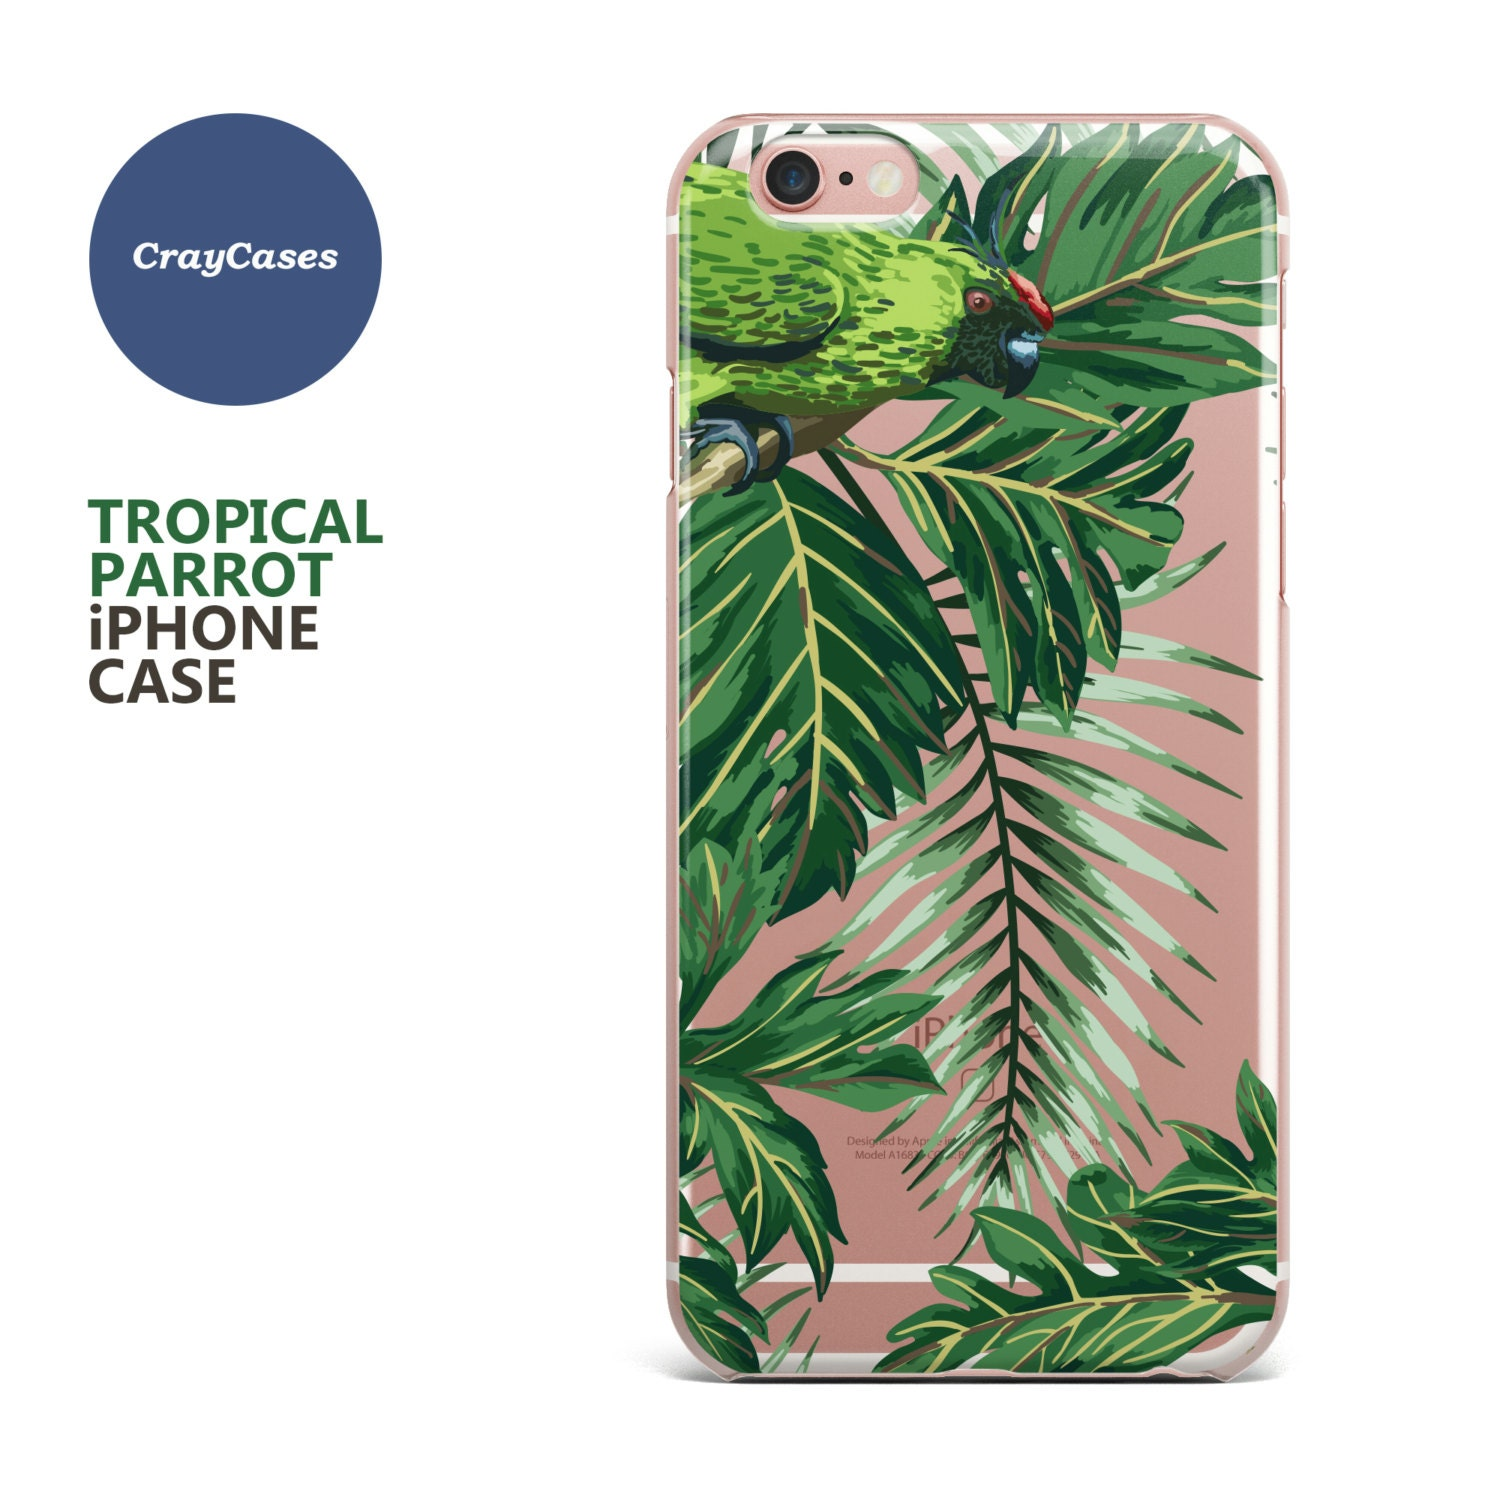 Parrots iPhone 7 Case Clear iPhone 6 Case Parrots iPhone 6s Case Leaves iPhone Case Also available for 6s Plus  6 (Shipped From UK)